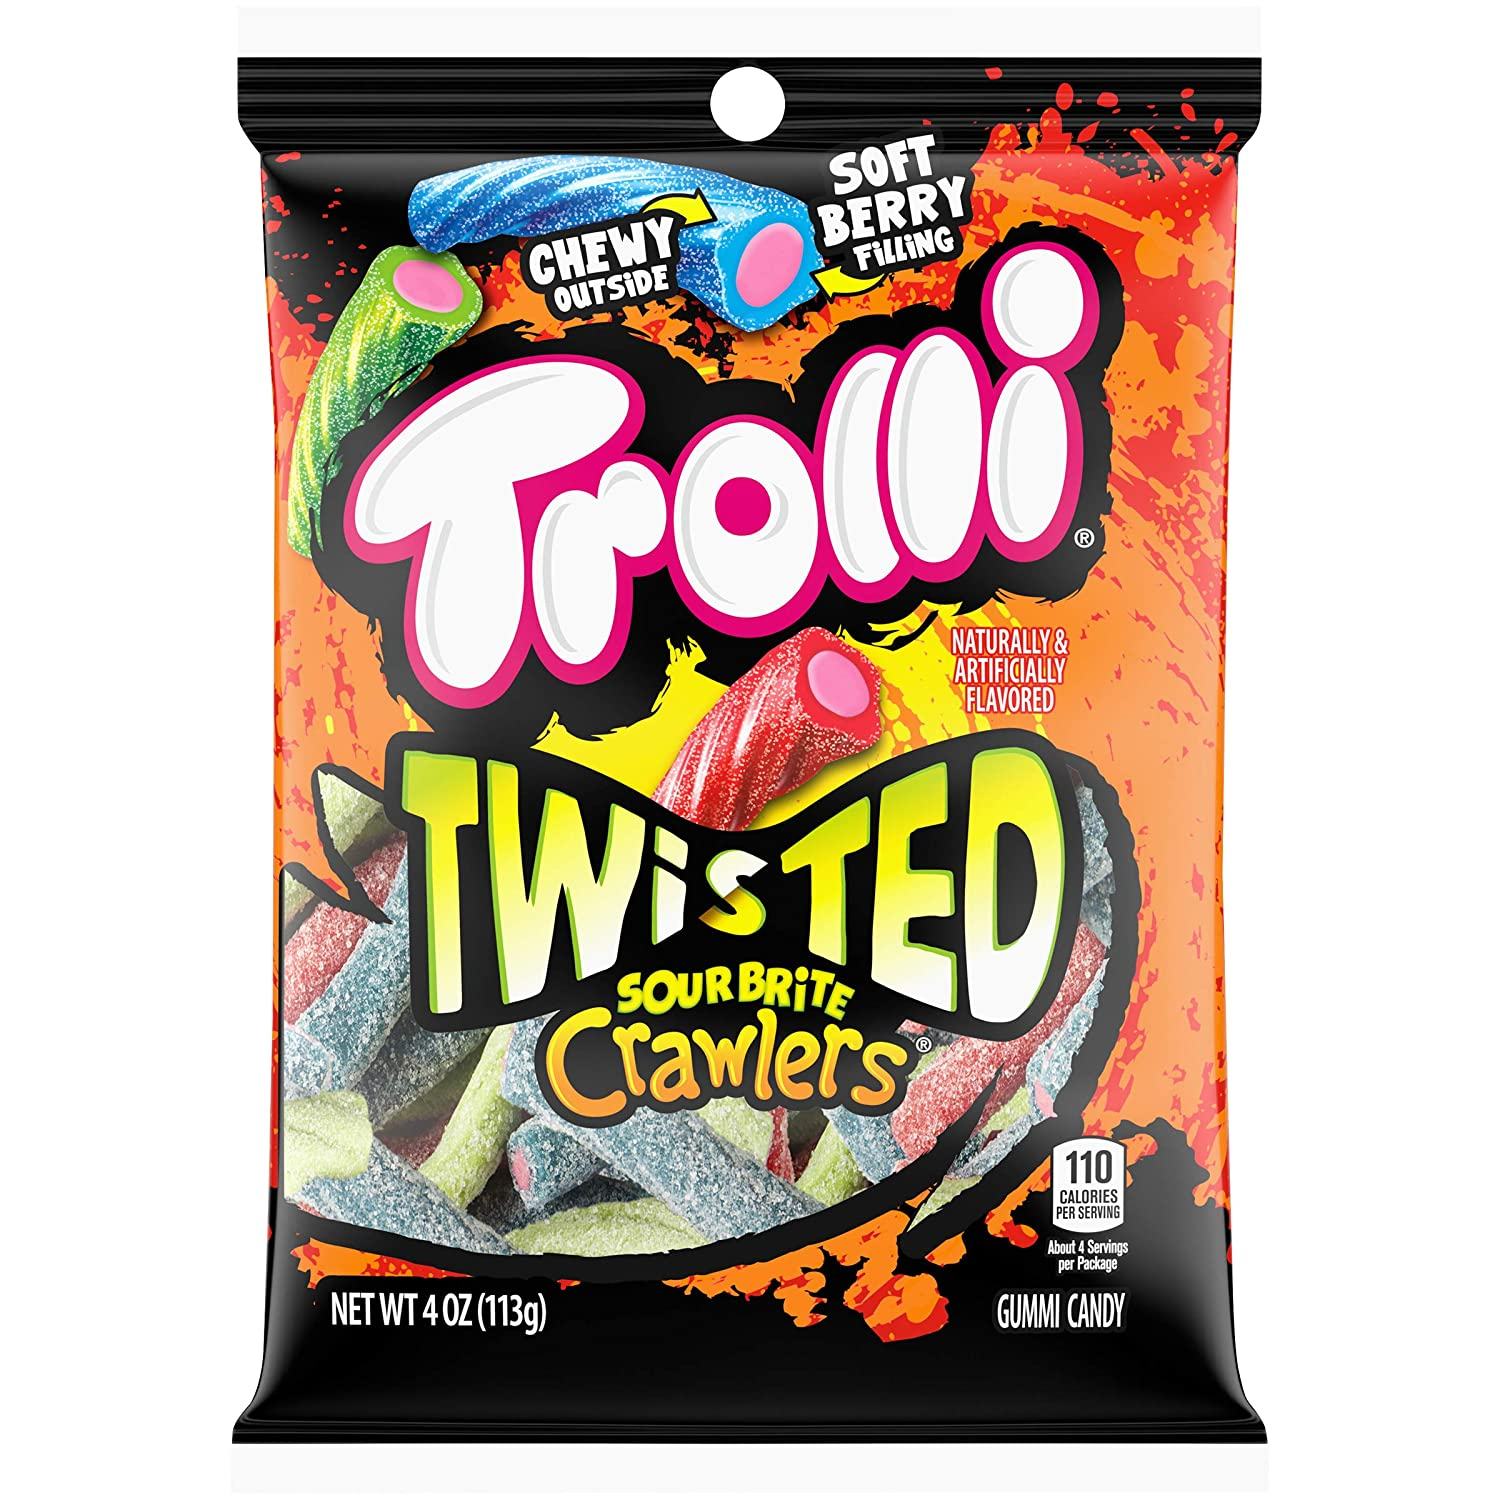 Trolli Twisted Sour Brite Crawlers Gummy Worms, 4 Ounce Peg Bag (Pack of 12) Sour Gummy Worms